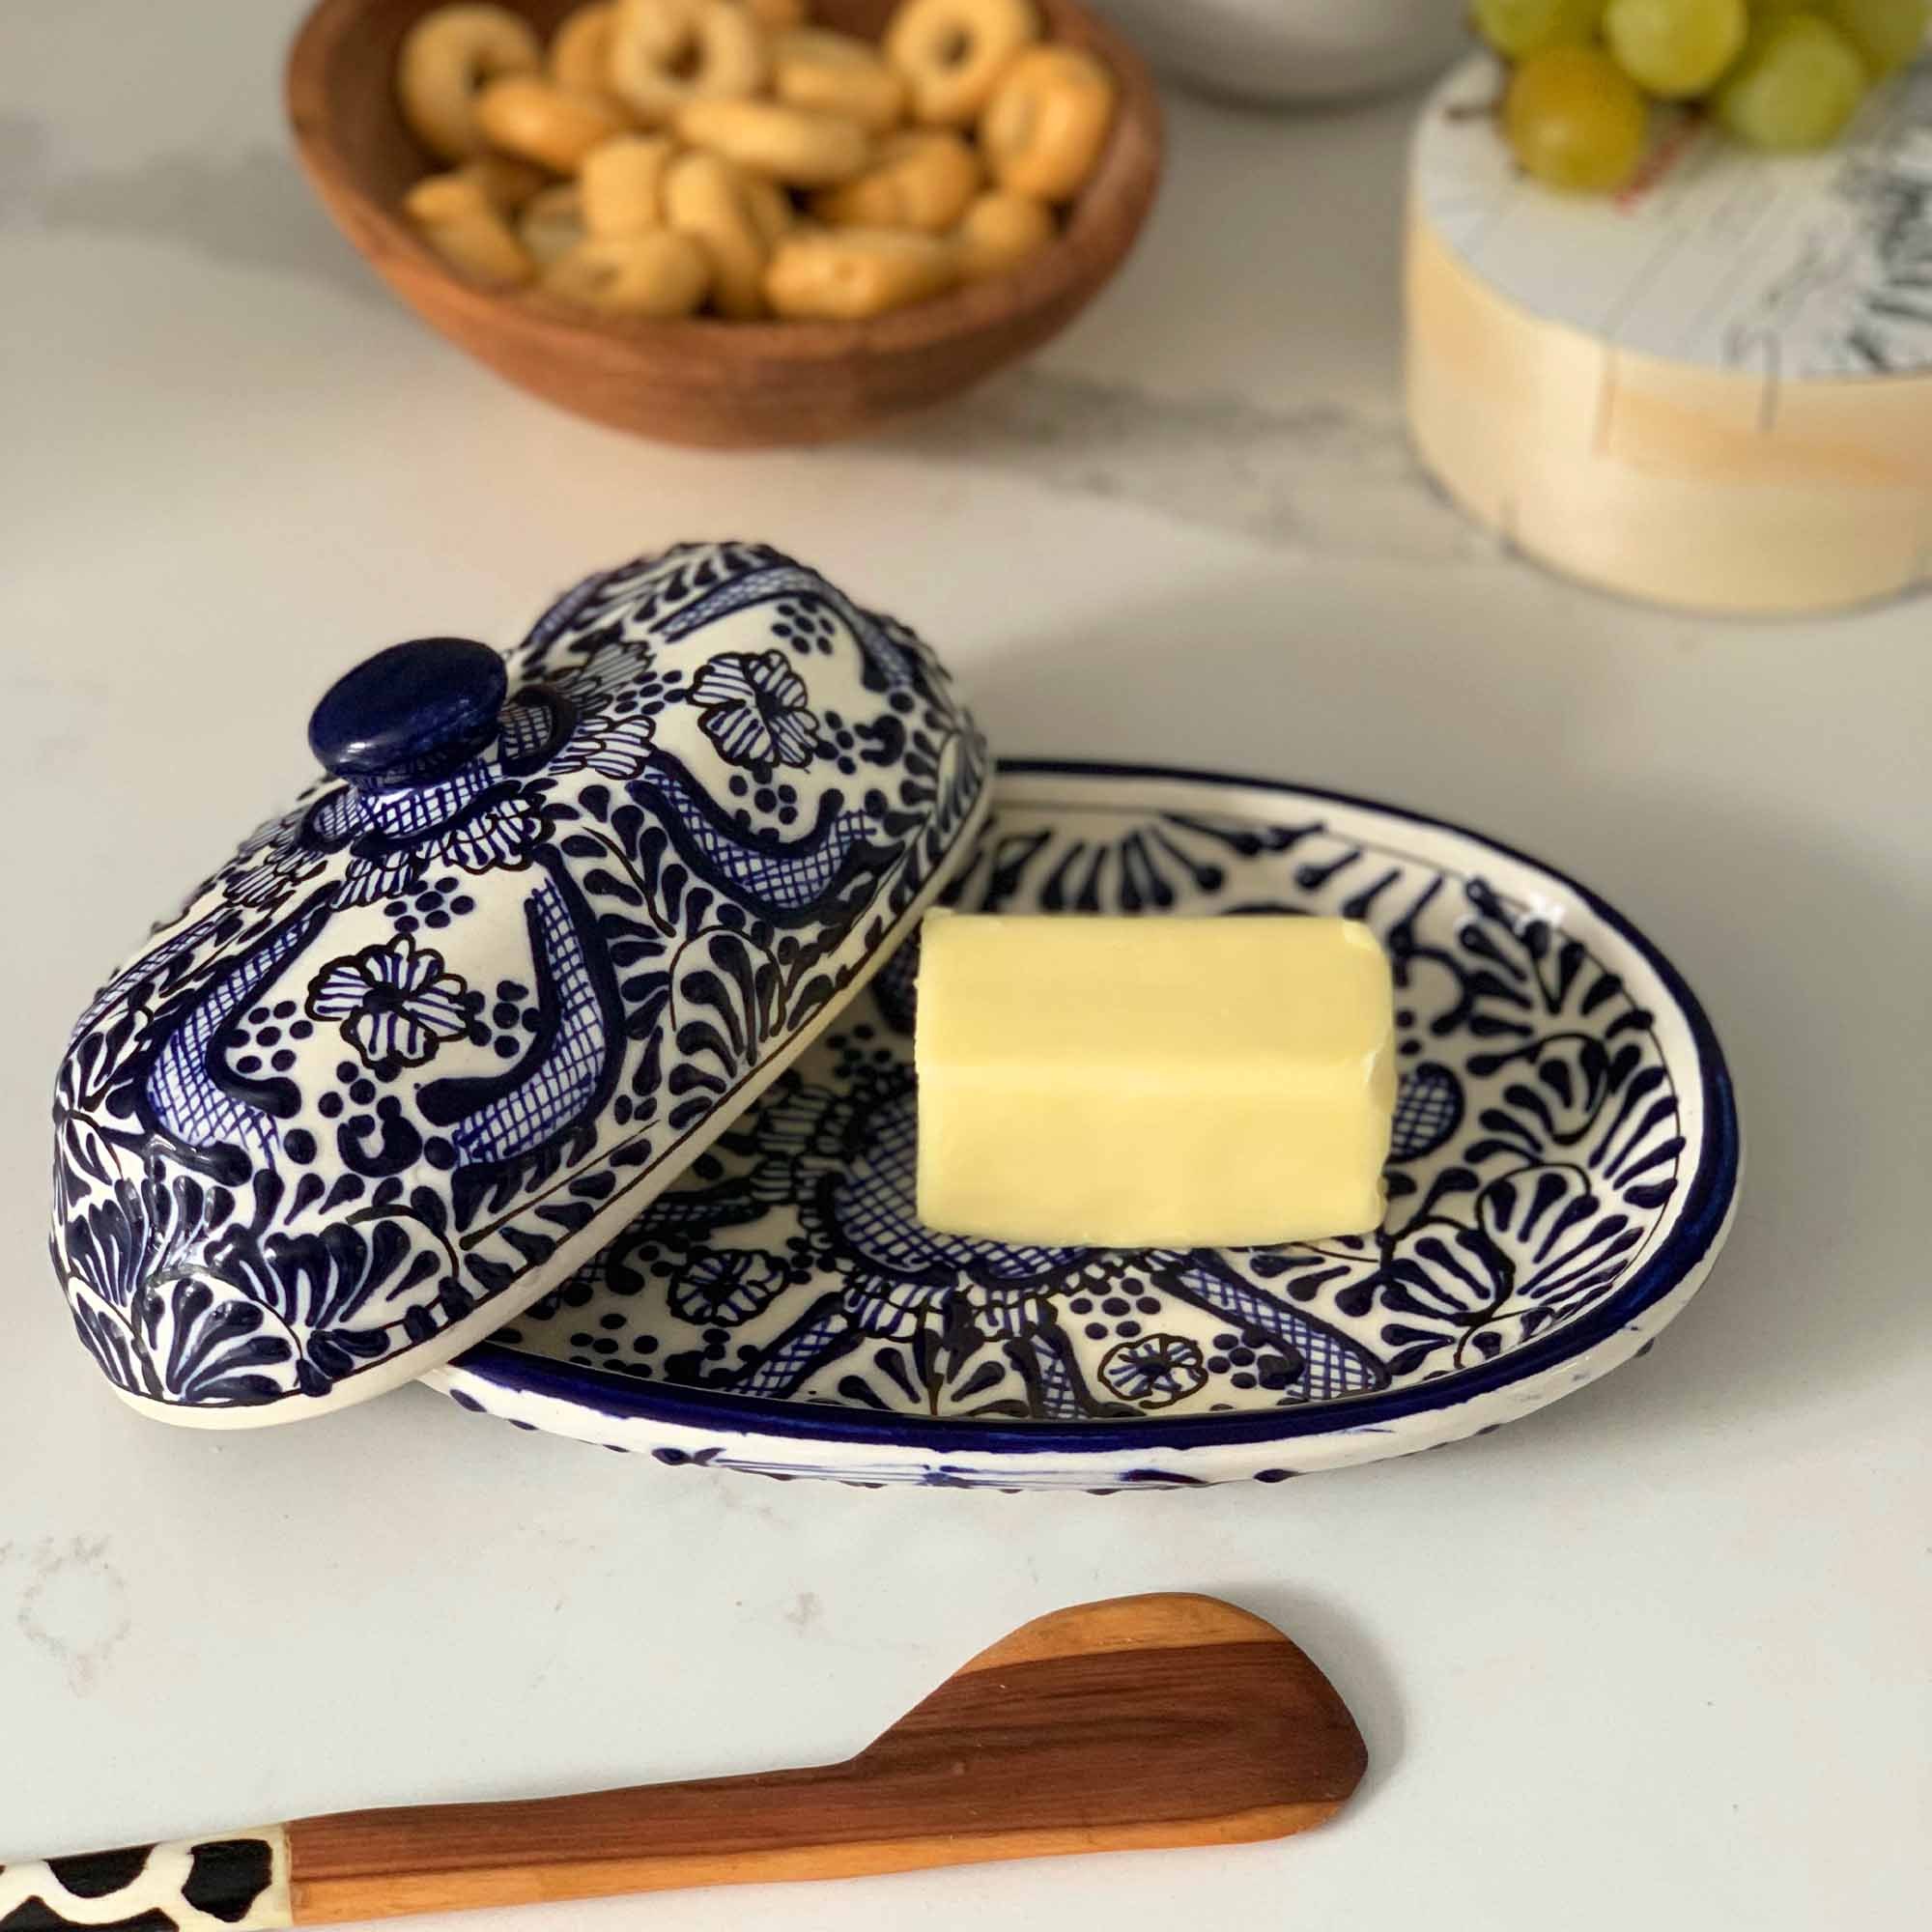 Authentic Mexican Pottery butter dish in blue and white flower design with hand-carved wood serving piece from Kenya.